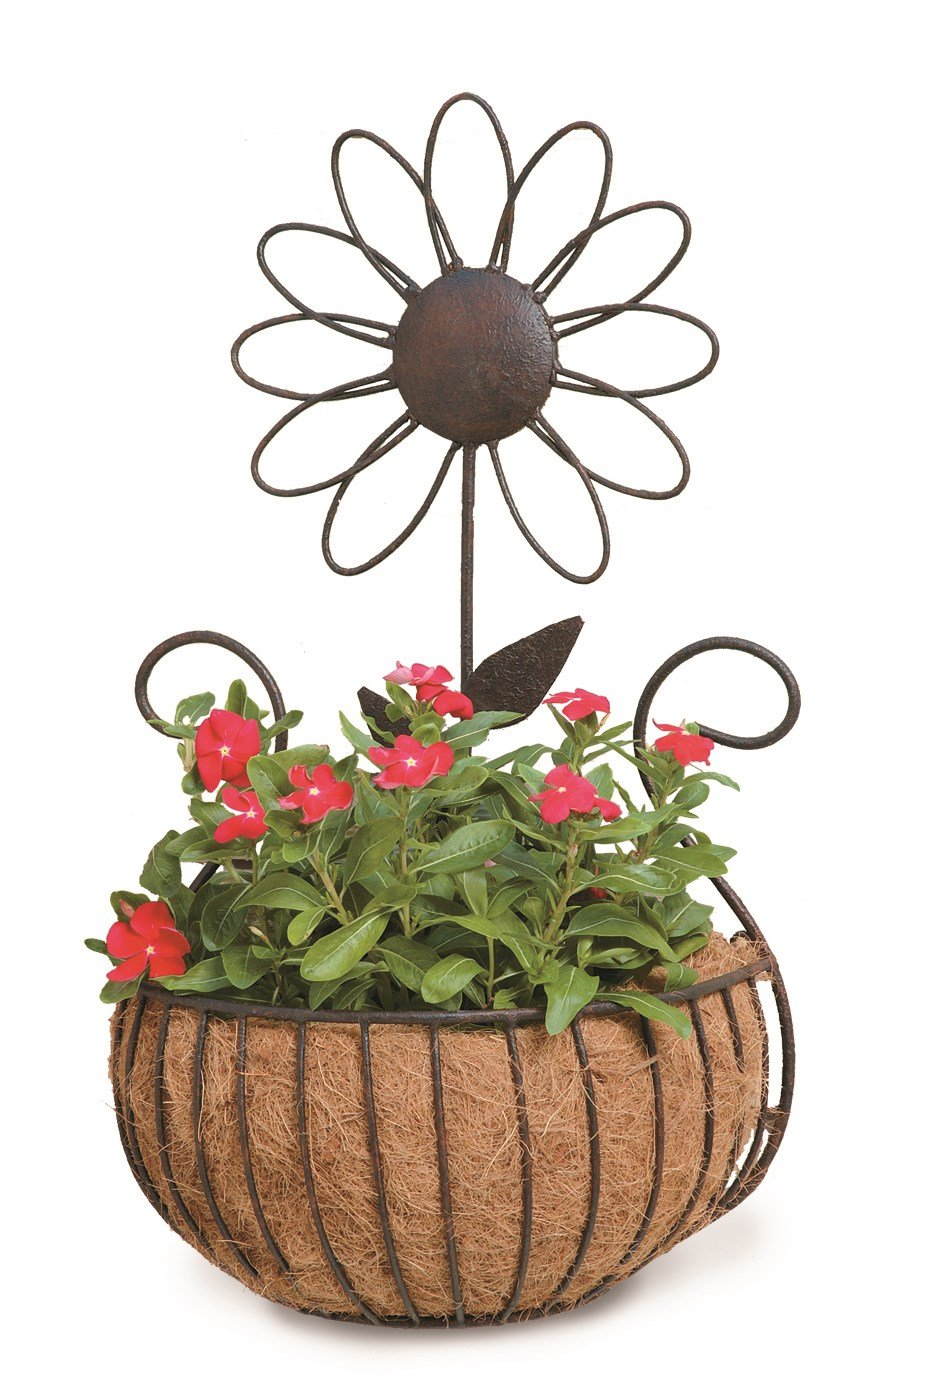 Deer Park Ironworks WB135 Daisy Wall Basket with Cocoa Moss Liner